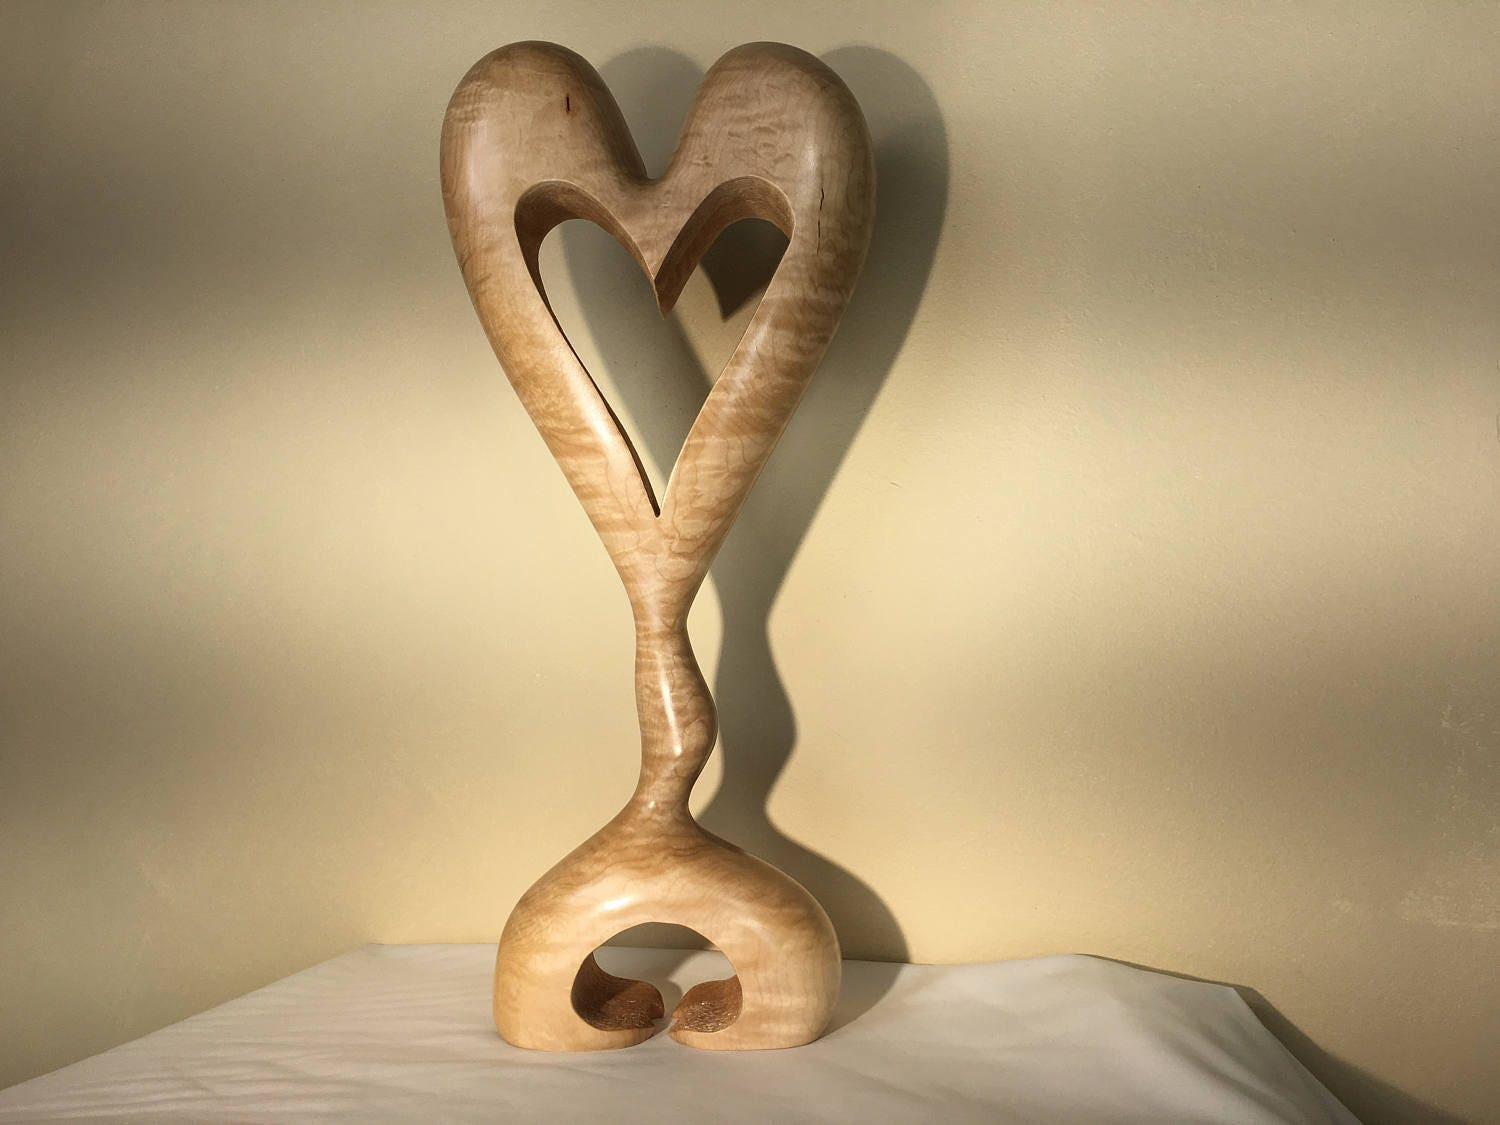 Heart wooden heart standing art wood carving love sculpture